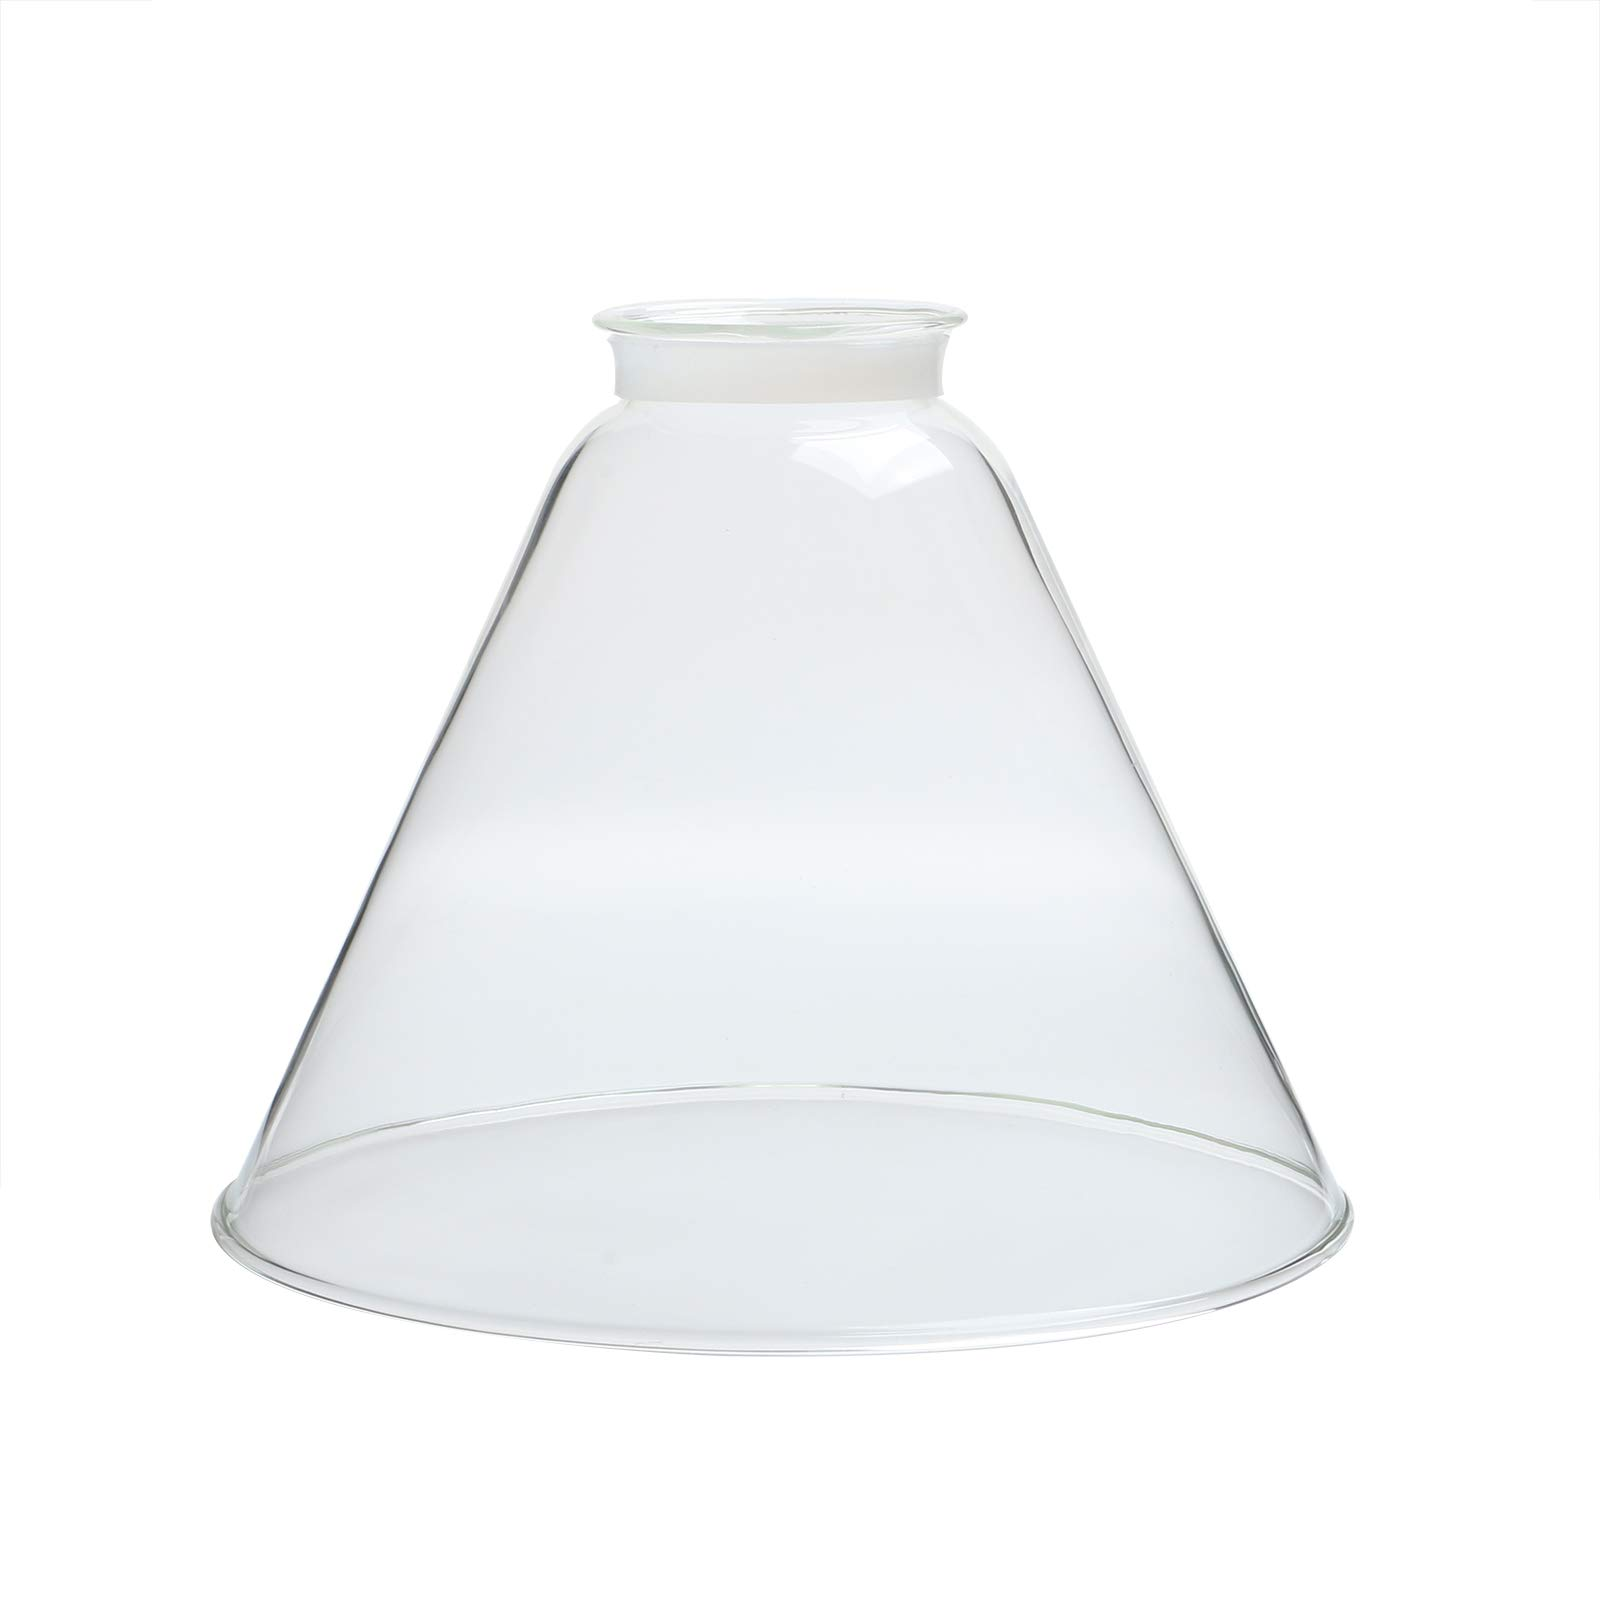 Permo Lighting Fixture Replacement Funnel Flared Clear Glass Shade